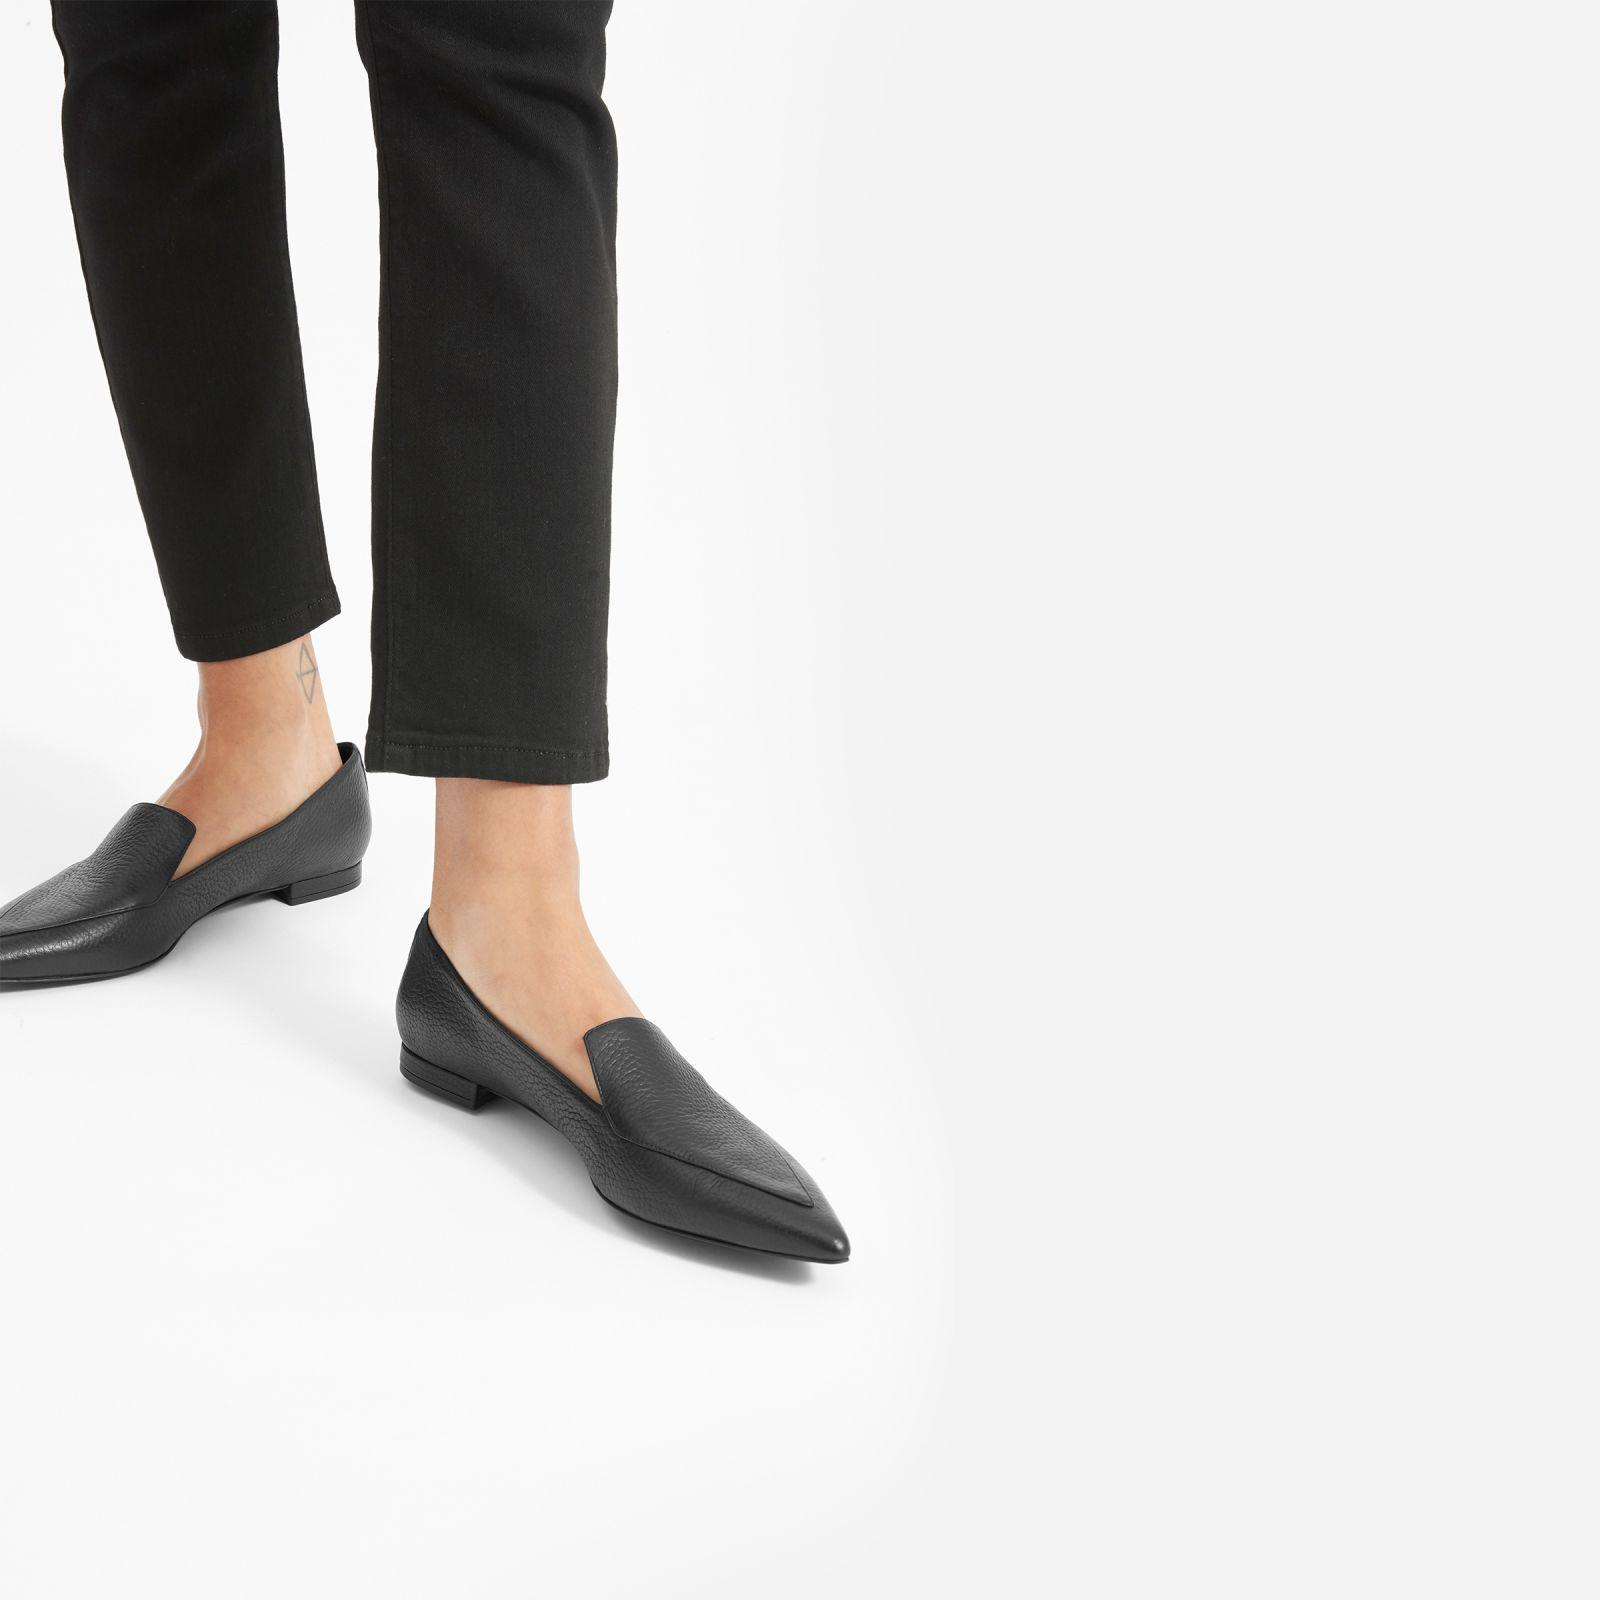 0707616d31f Everlane - Black The Boss Flat - Lyst. View fullscreen